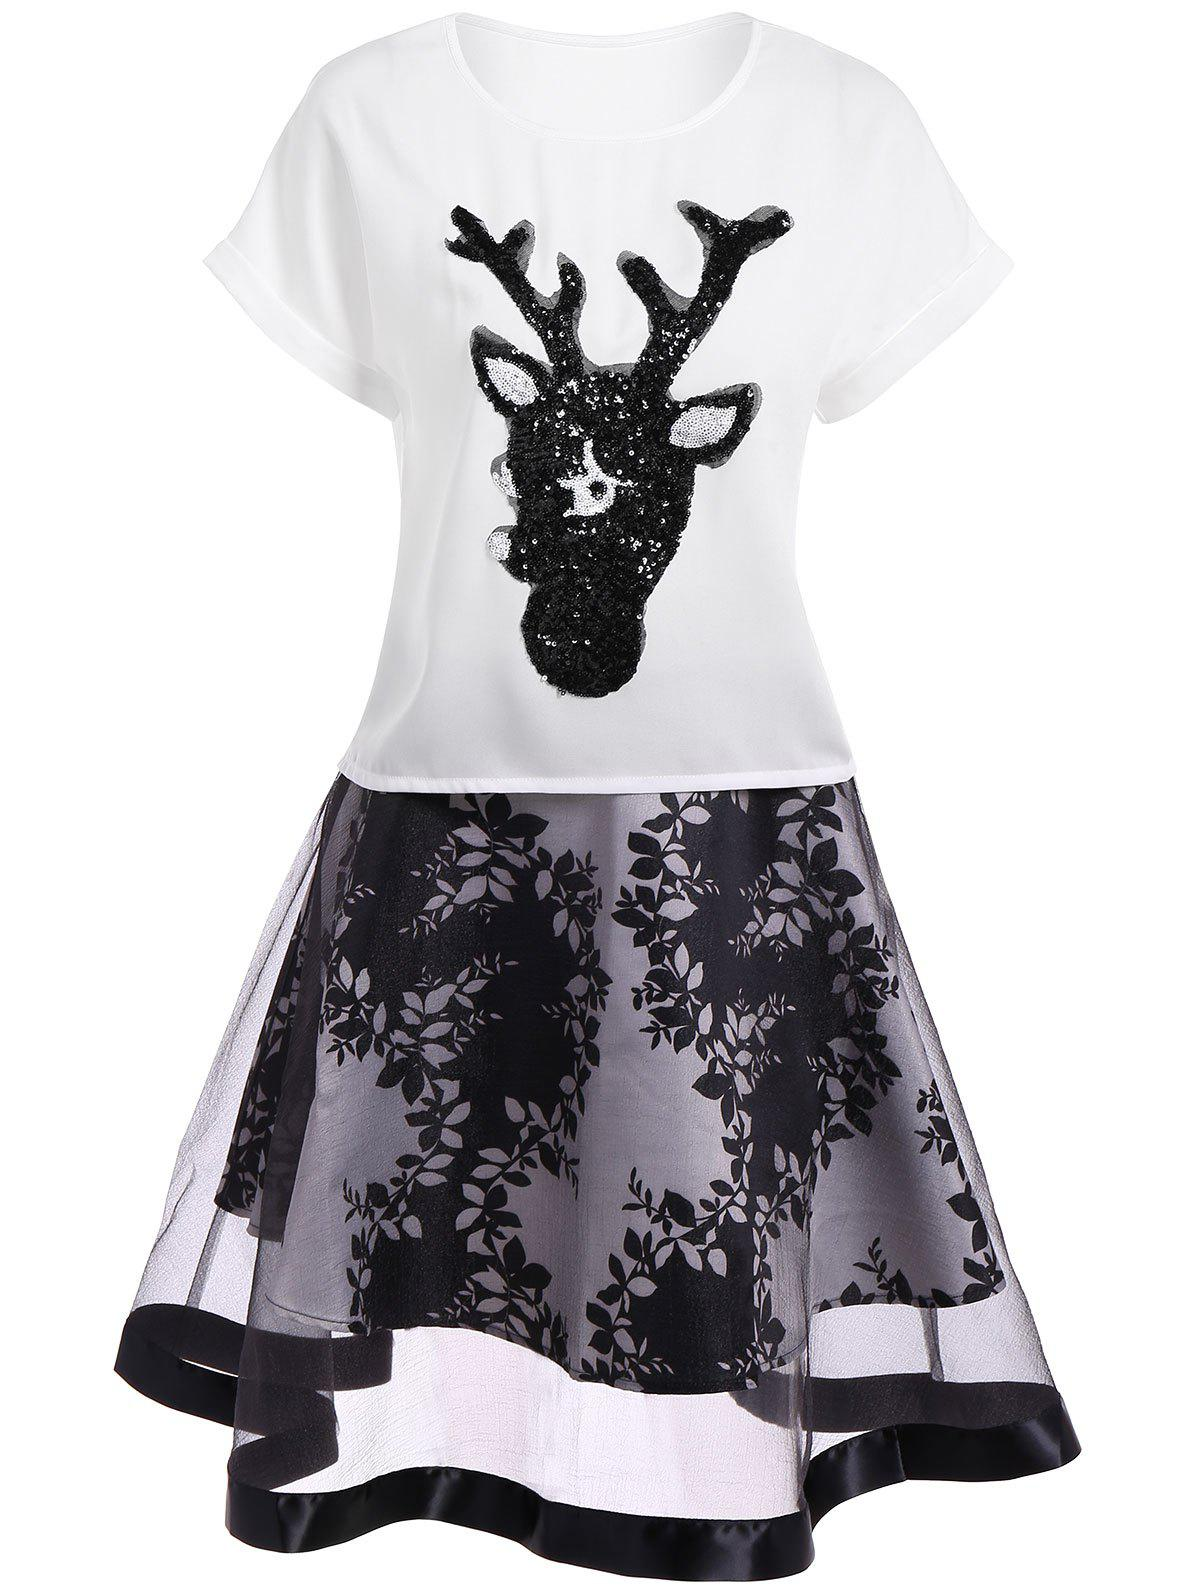 Sequins Embellished Deer Pattern Blouse and Plant Print Mesh Skirt - WHITE M